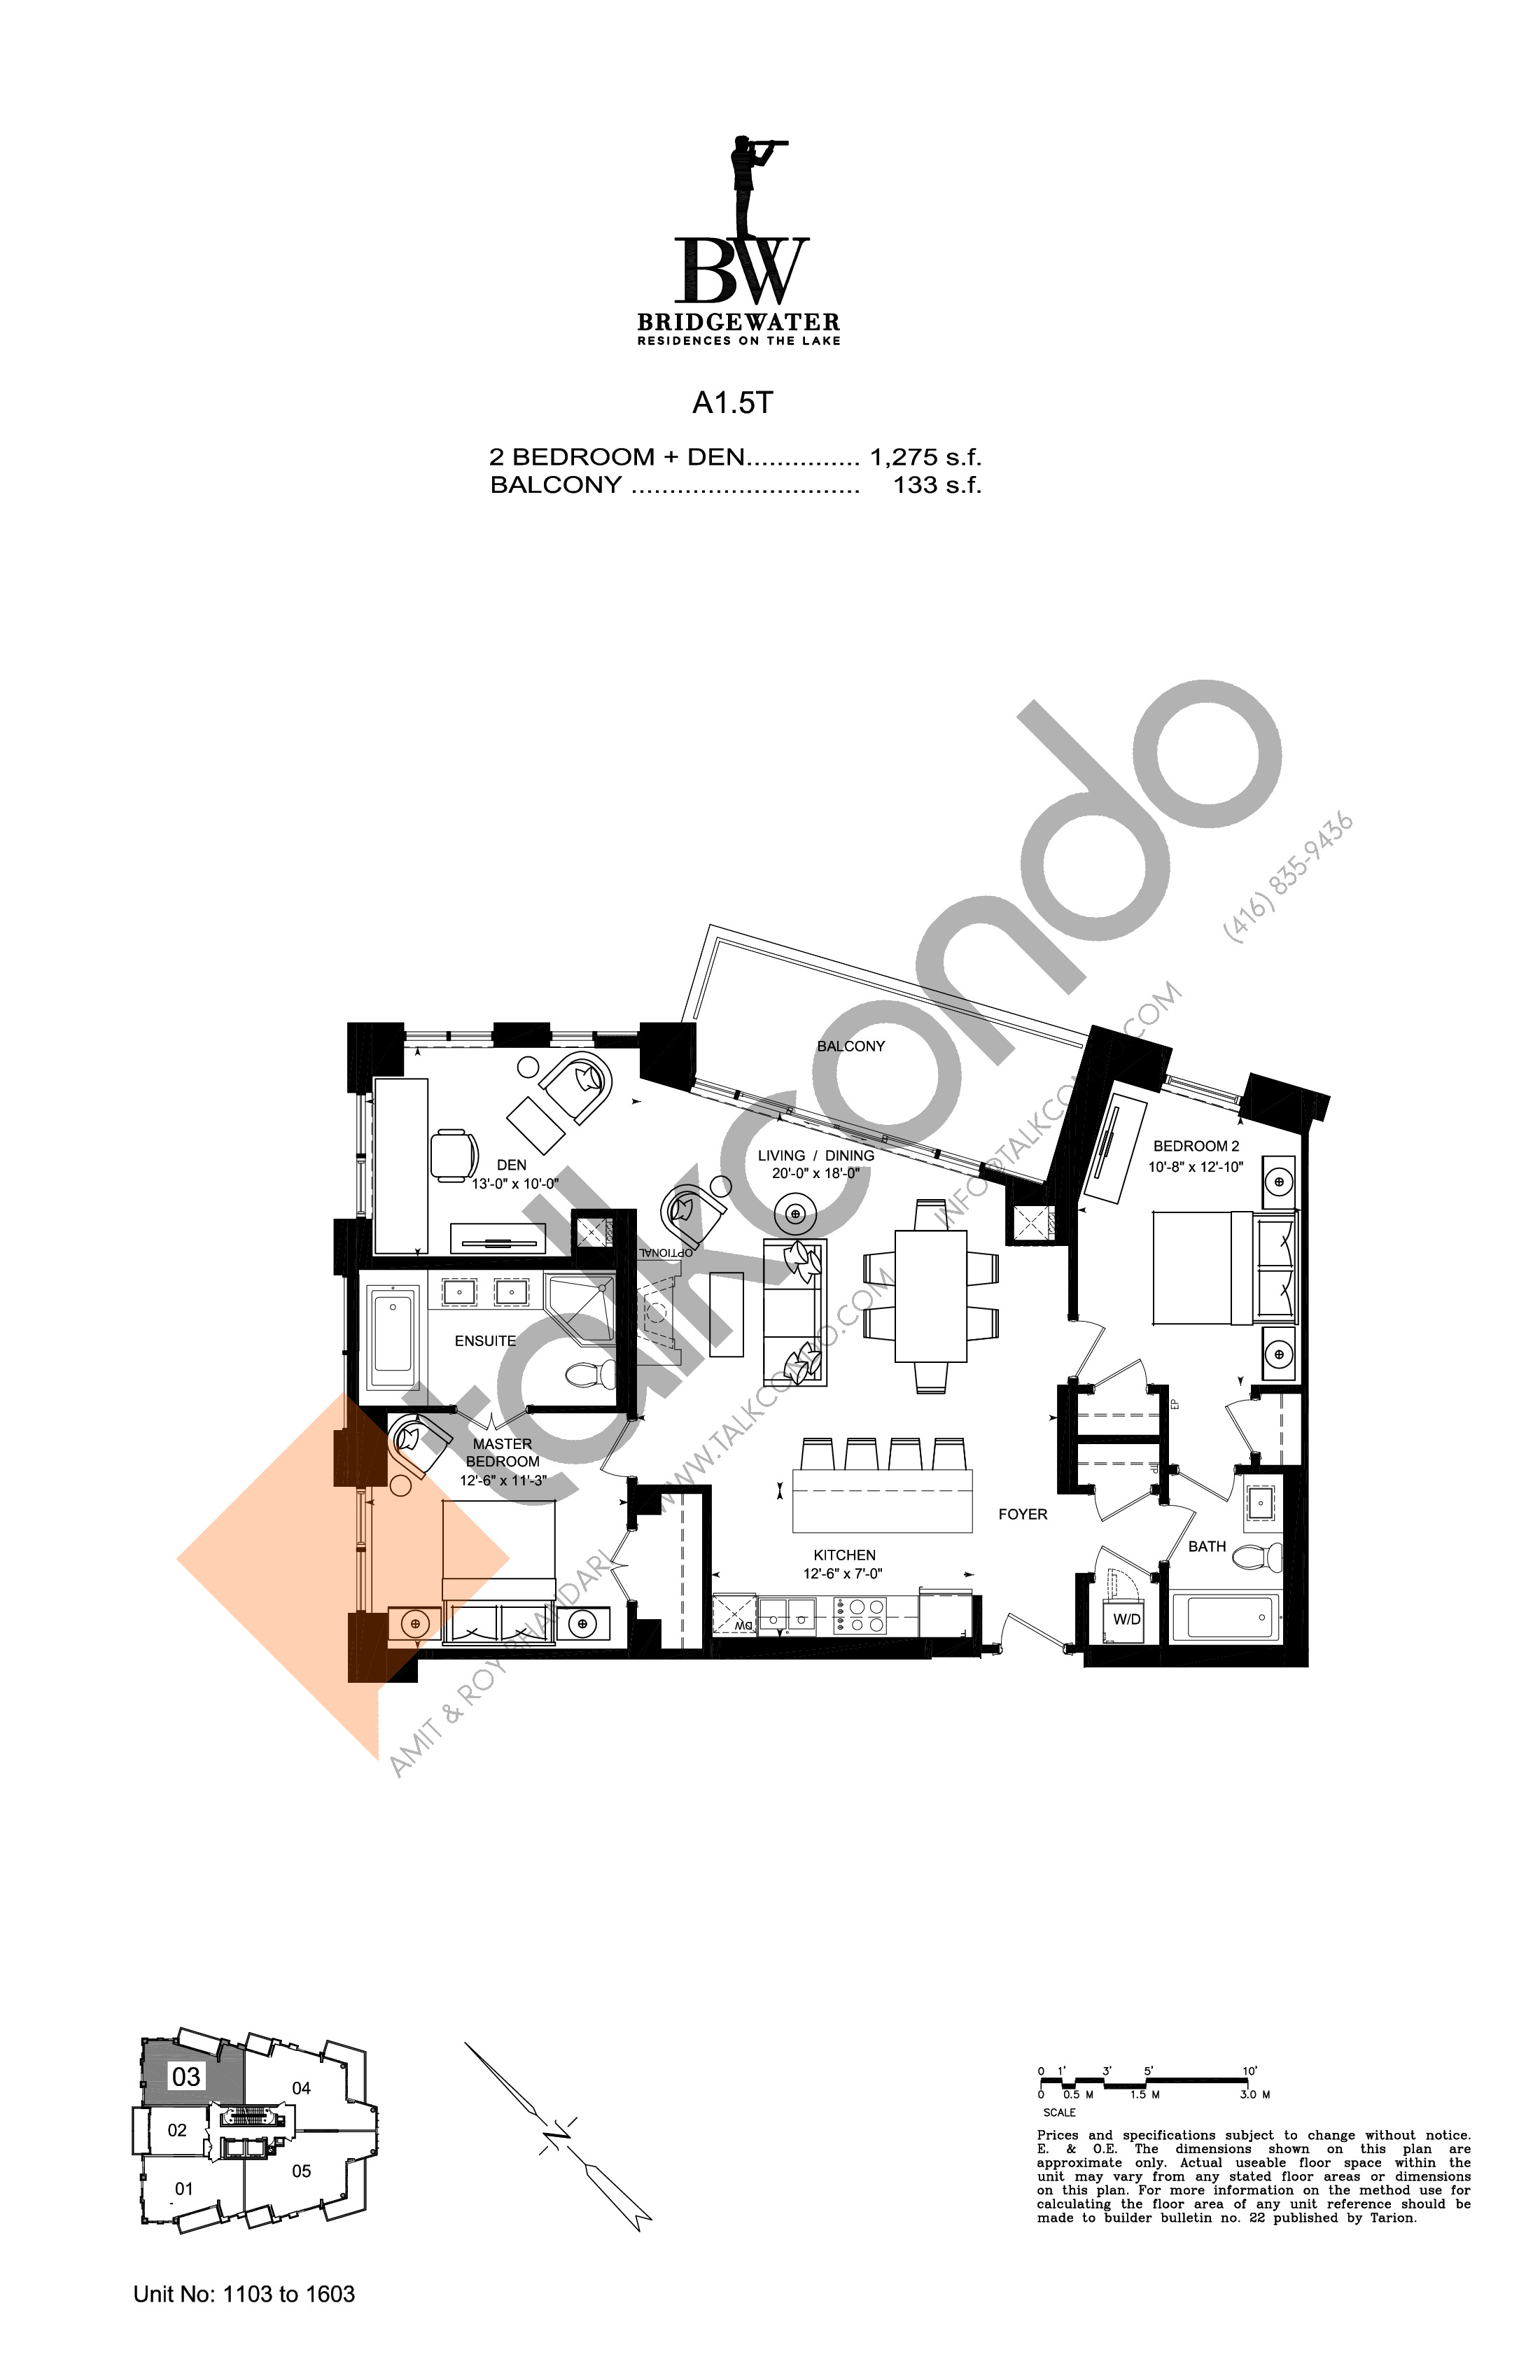 Unit 1103 to 1603 Floor Plan at Bridgewater Residences on the Lake Condos - 1275 sq.ft